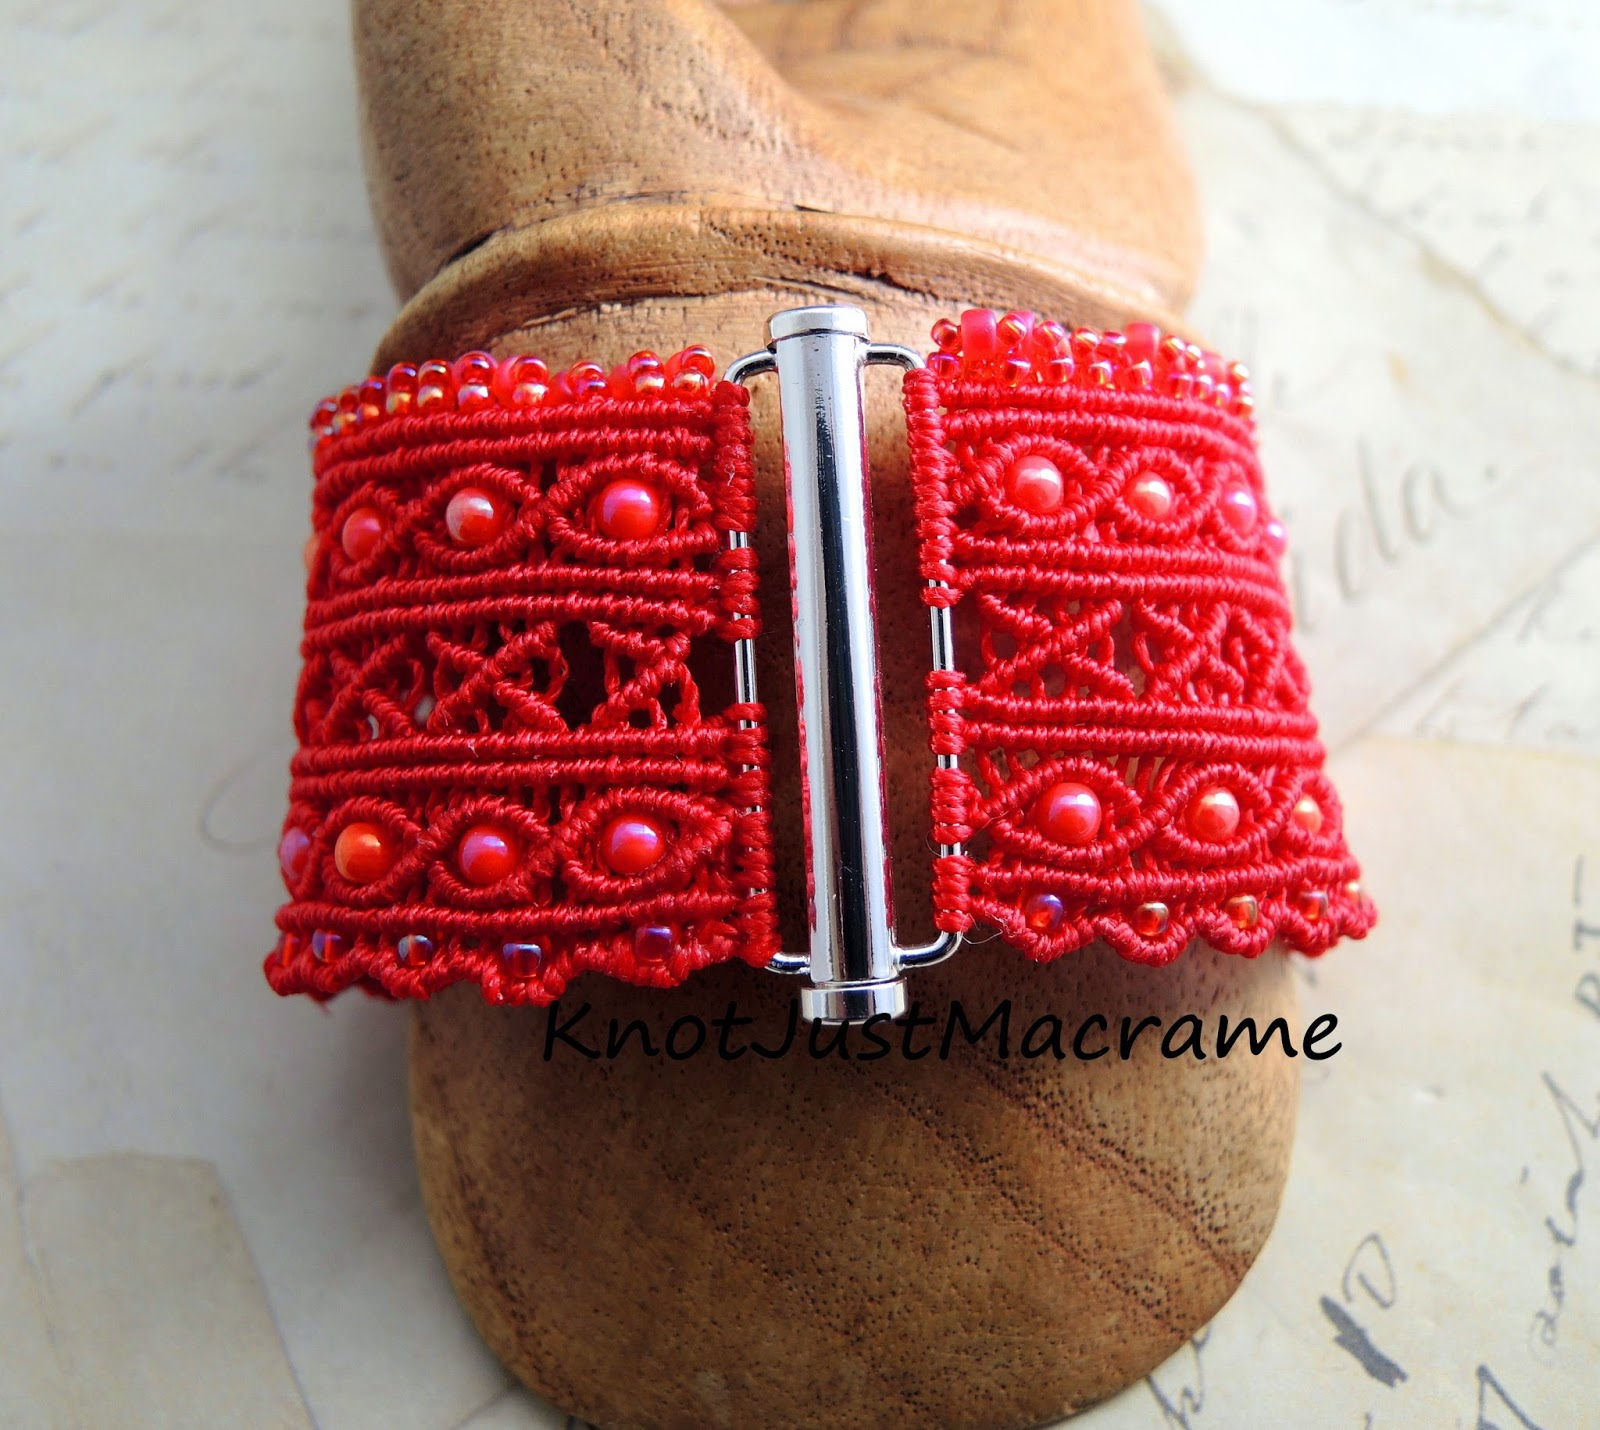 Closure of macrame cuff